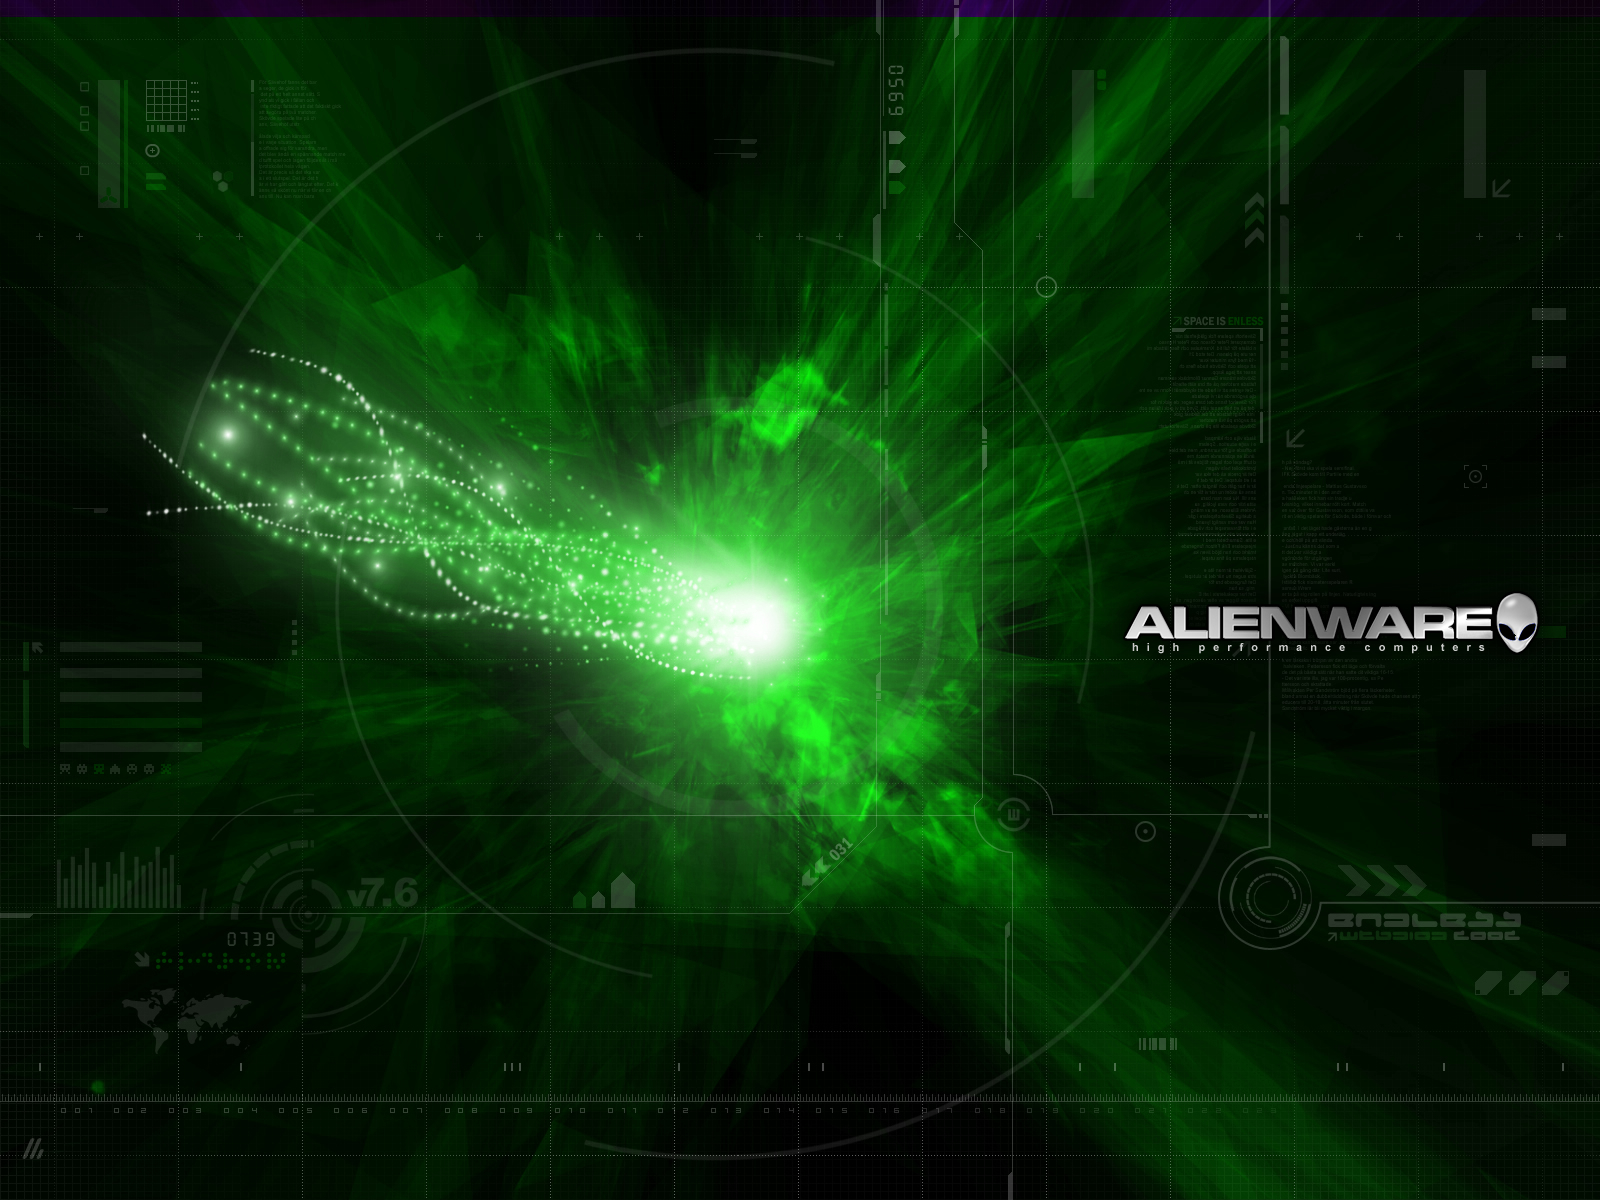 Alienware green wallpapers Alienware green stock photos 1600x1200